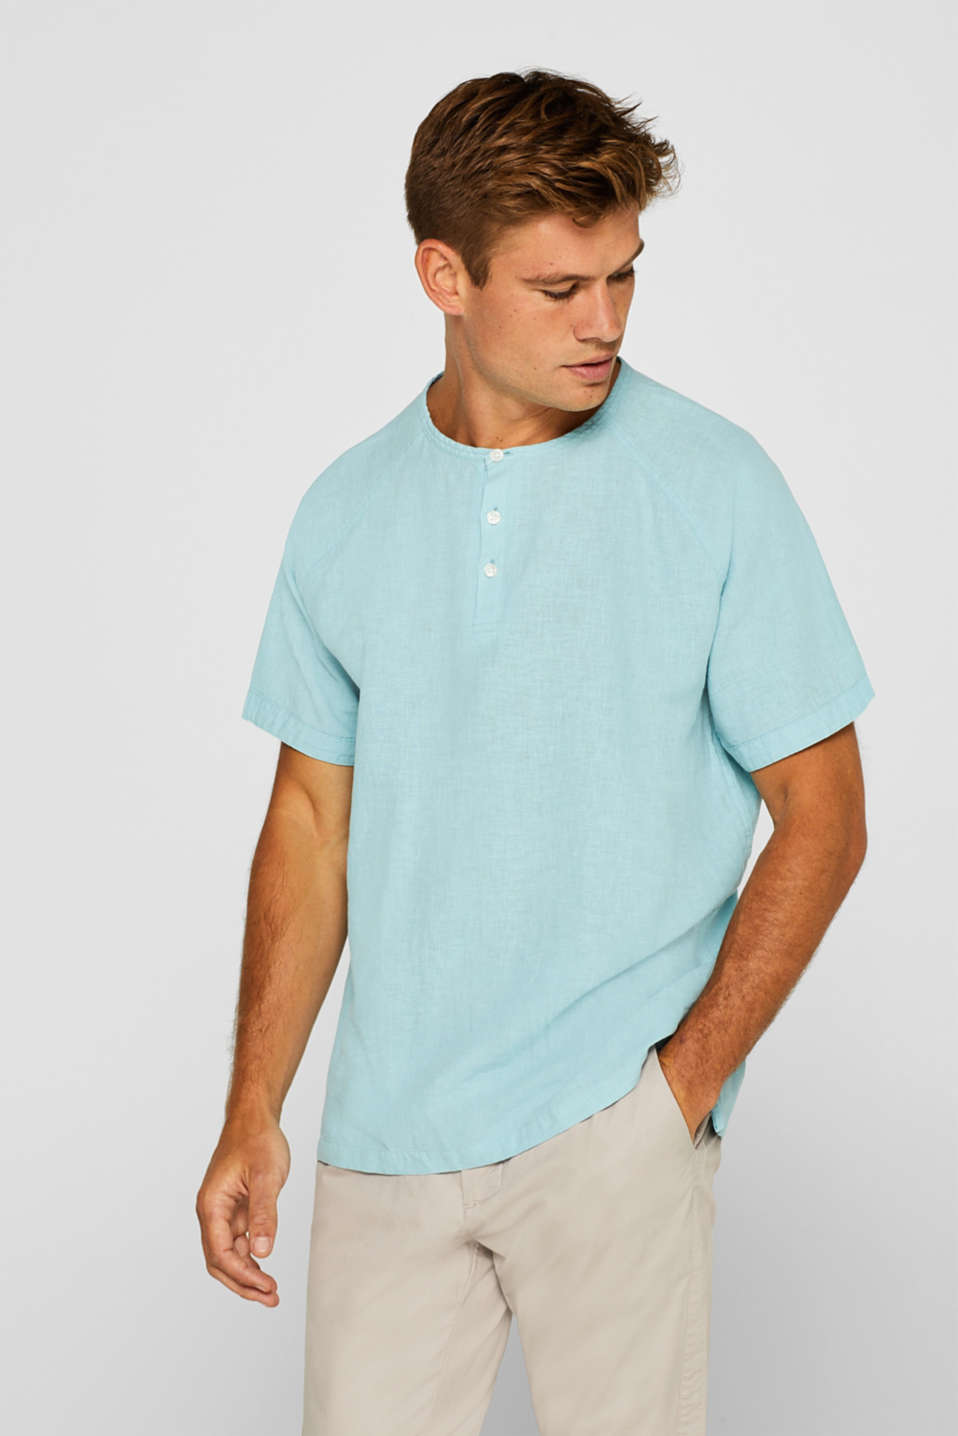 Esprit - Blended linen short-sleeved top with a Henley collar